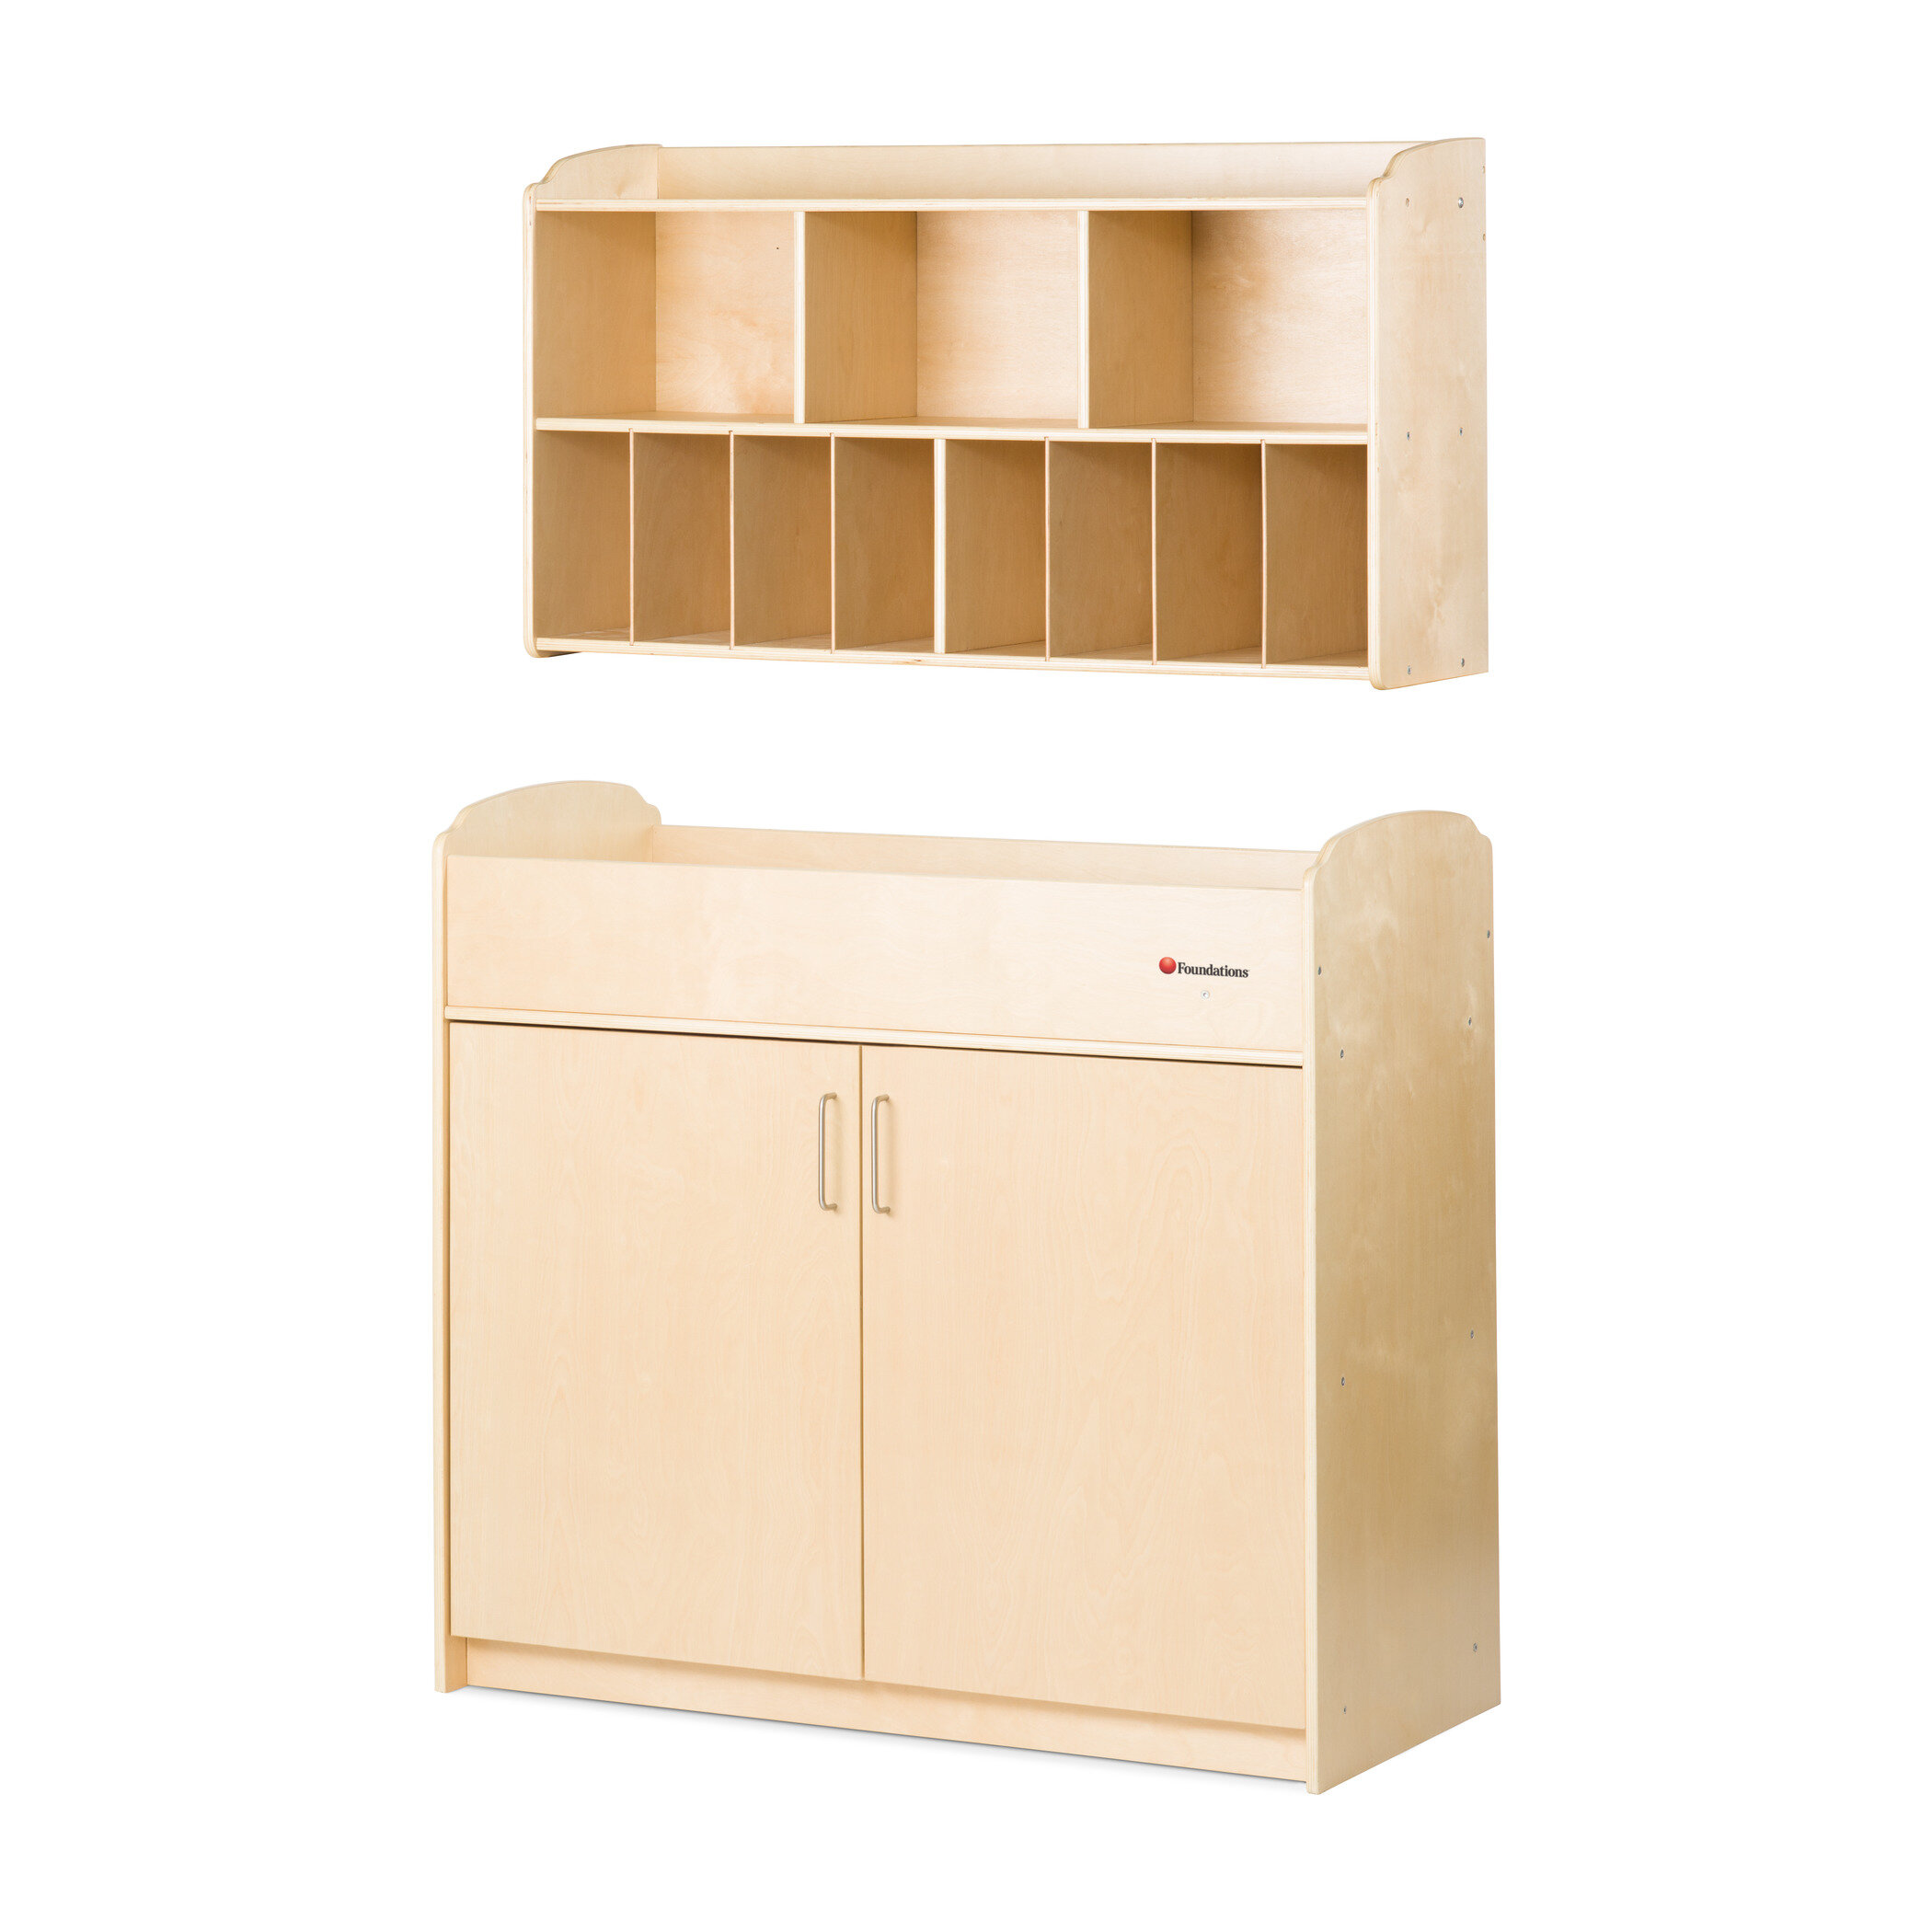 Foundations Next Generation 2 Piece Changing Table Set | Wayfair